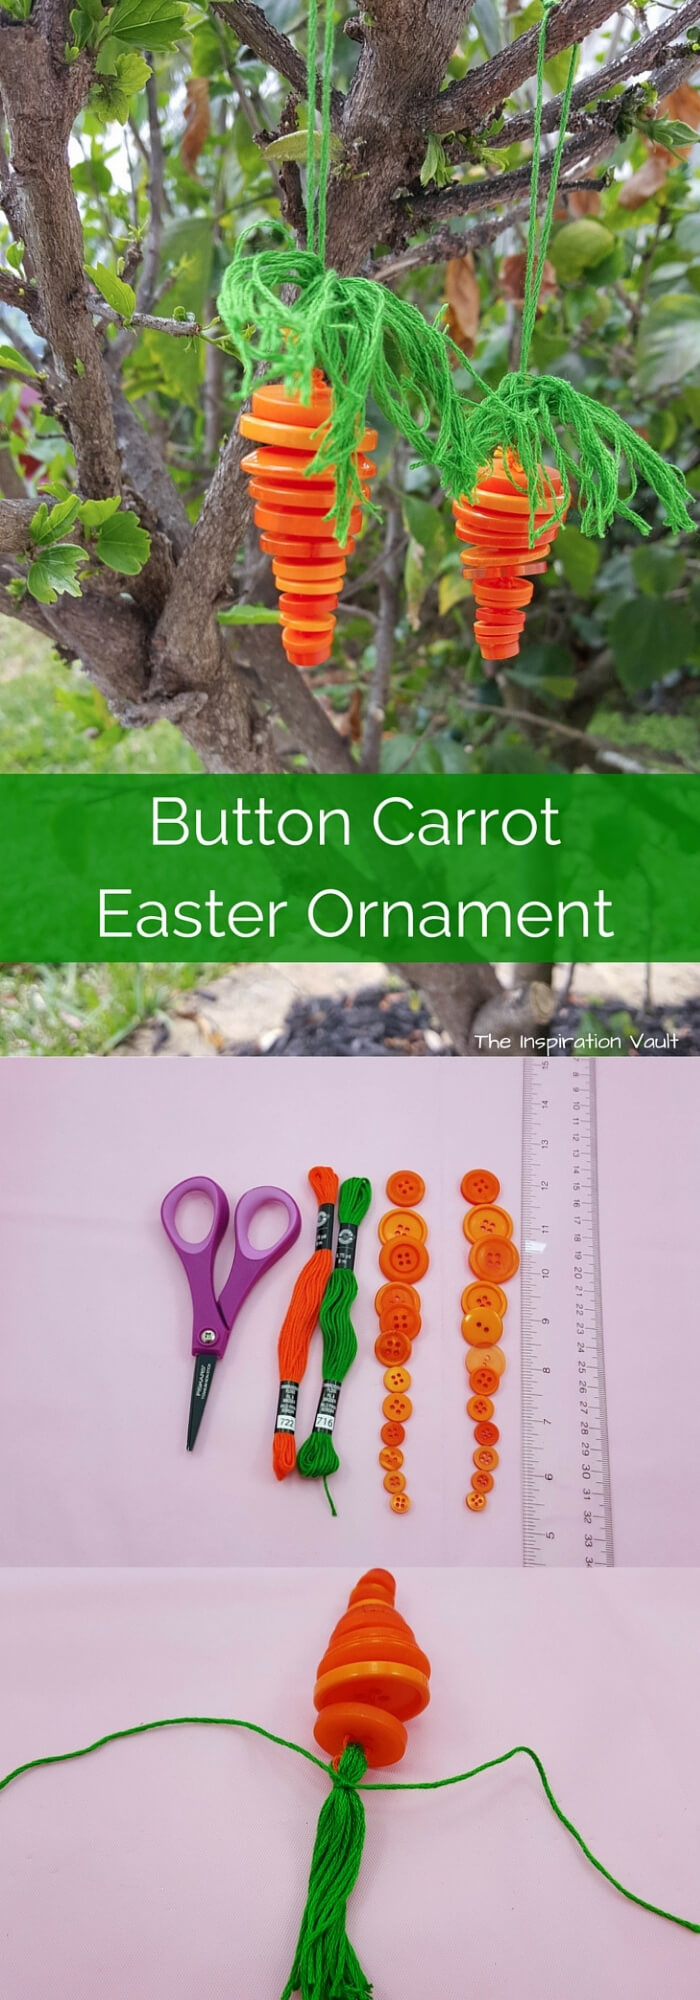 Button carrot Easter ornament   Creative Easter Garden Projects & Ideas Your Kids Will Love